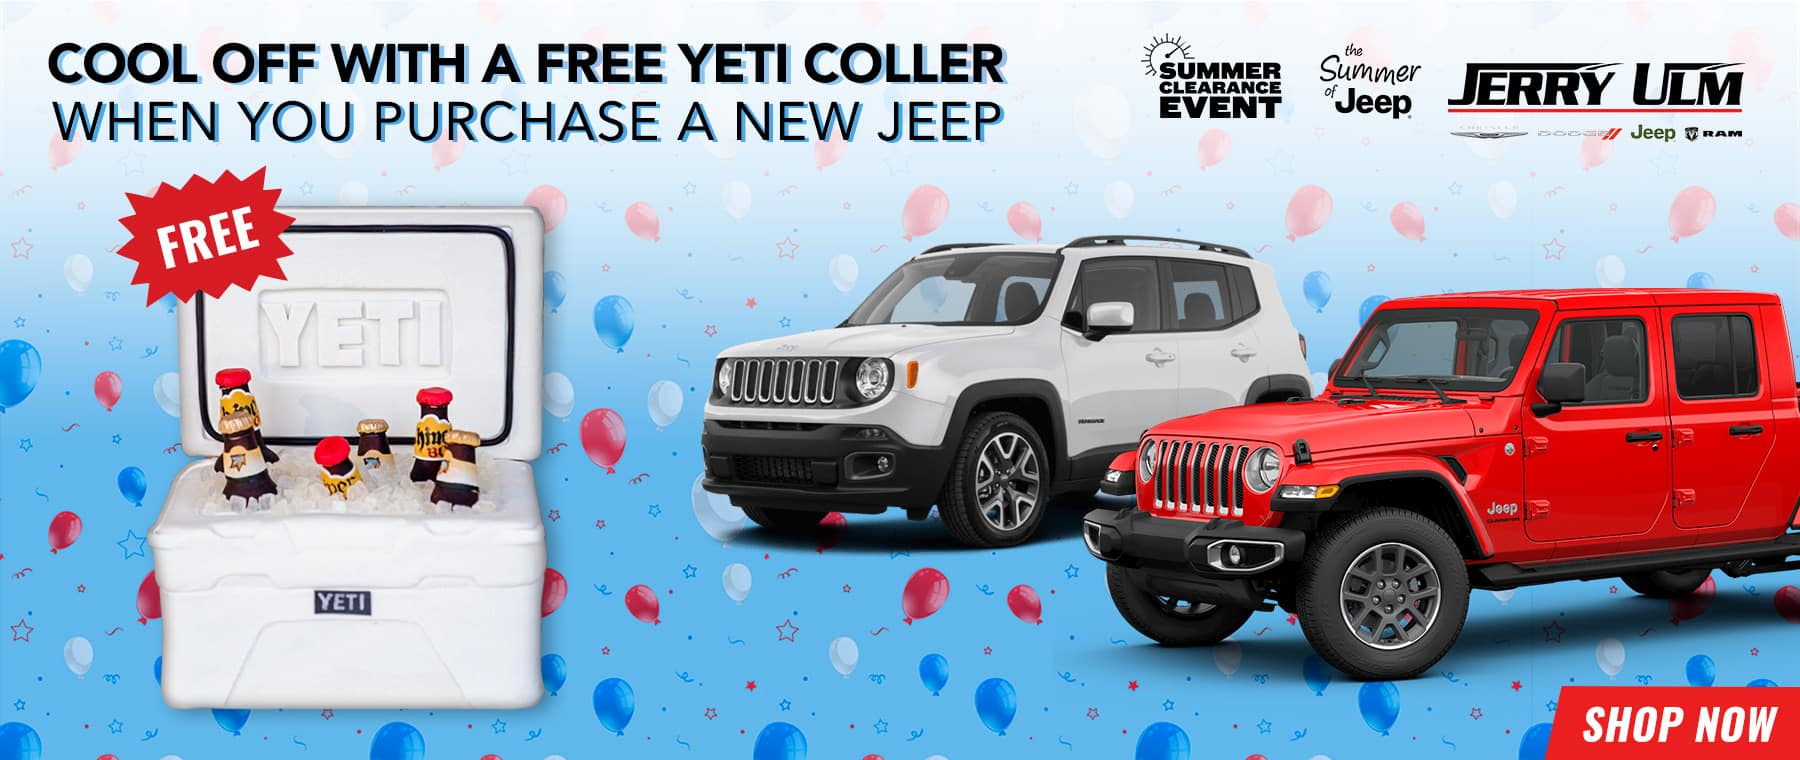 Free Yeti Cooler When You Purchase A New Jeep